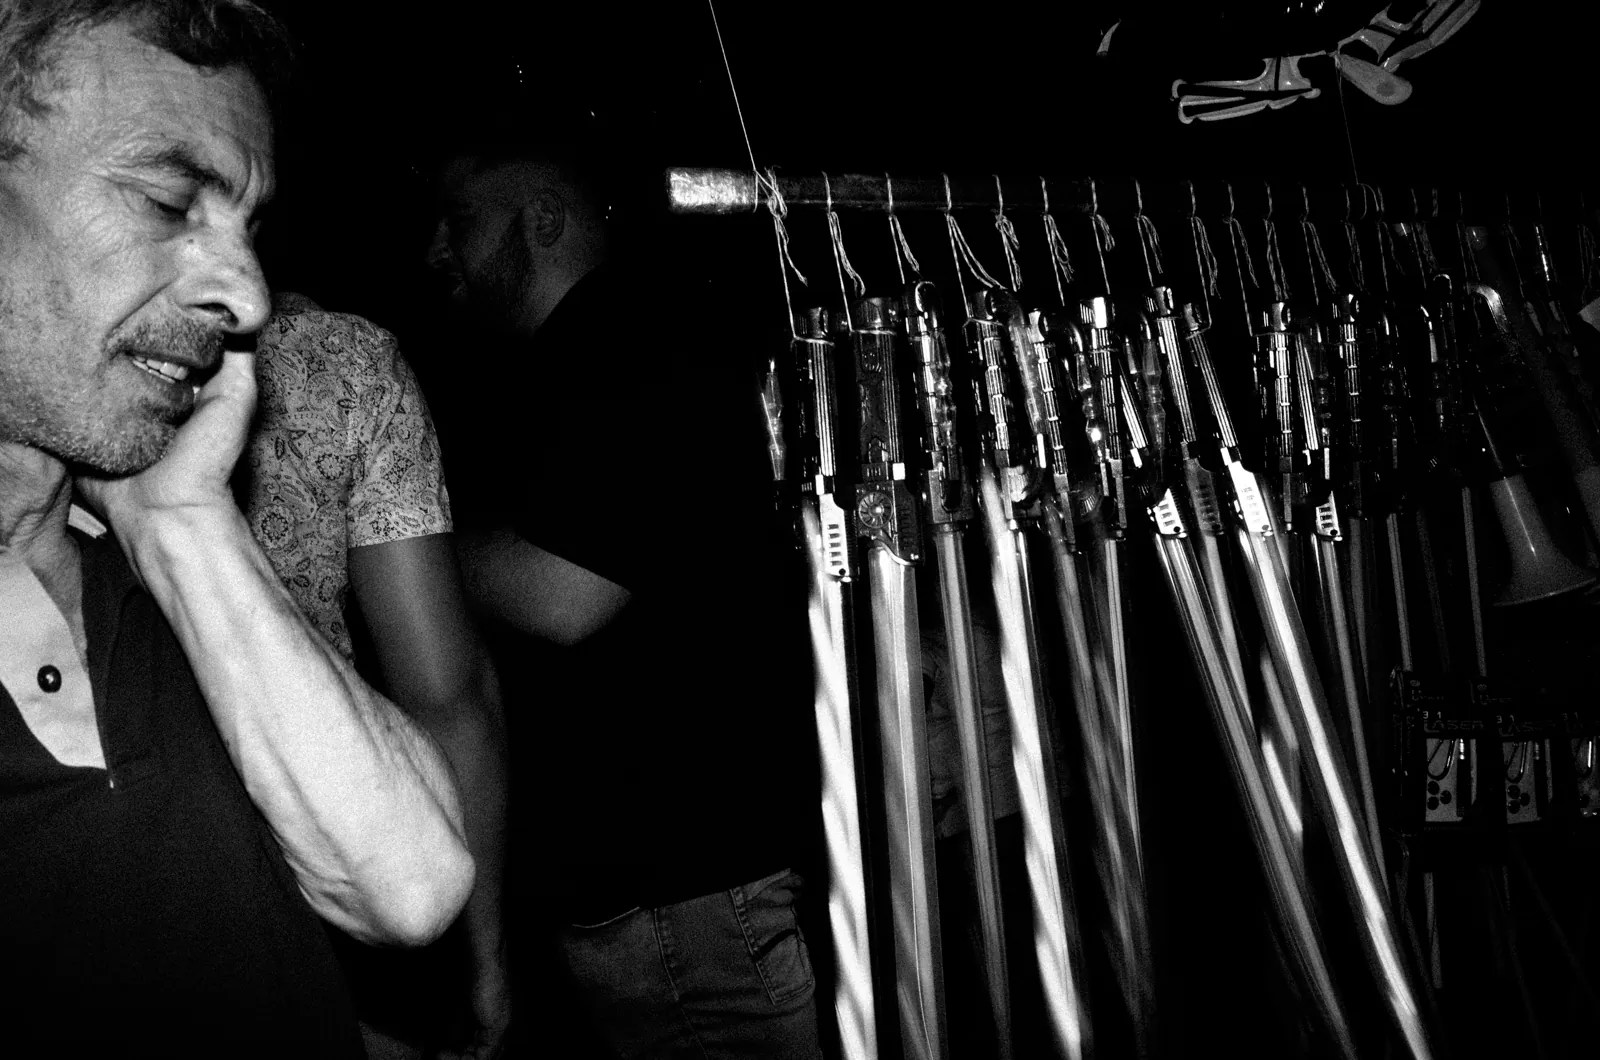 R0020027 - Una Istintiva Sessione Notturna • Street Photography Night Session a Palagonia - Sicilia - fotostreet.it